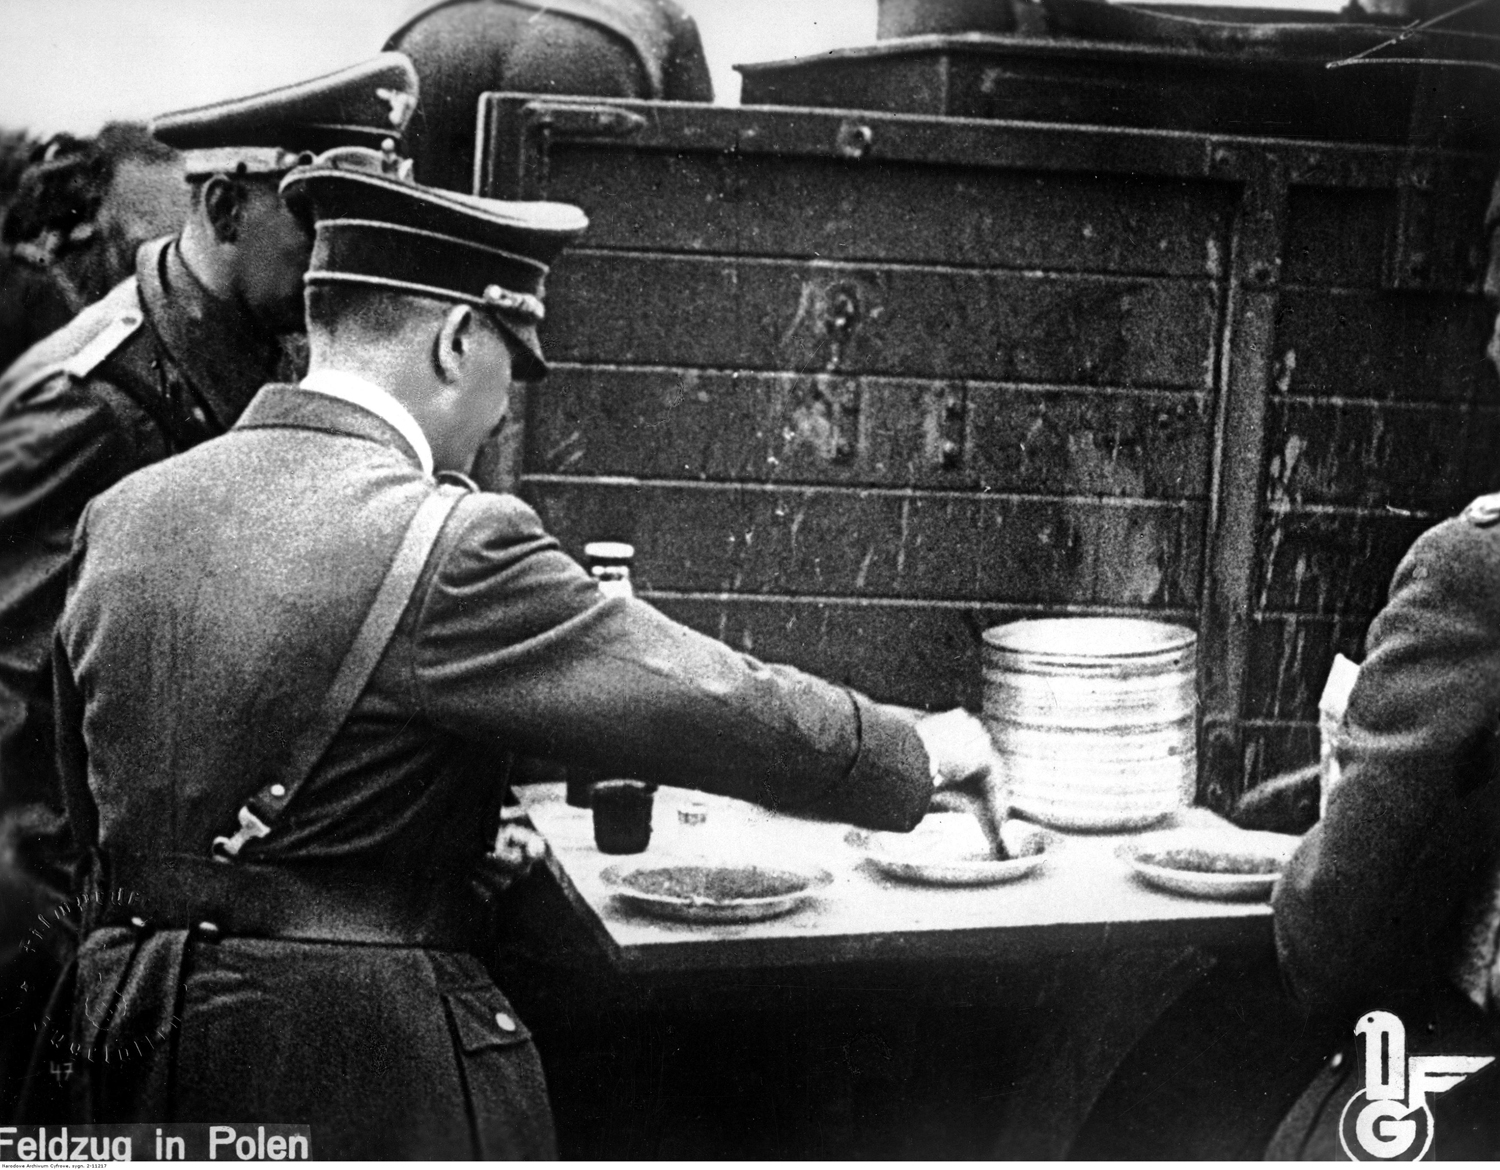 Adolf Hitler taking a lunch break at the field kitchen near the front line in Poland